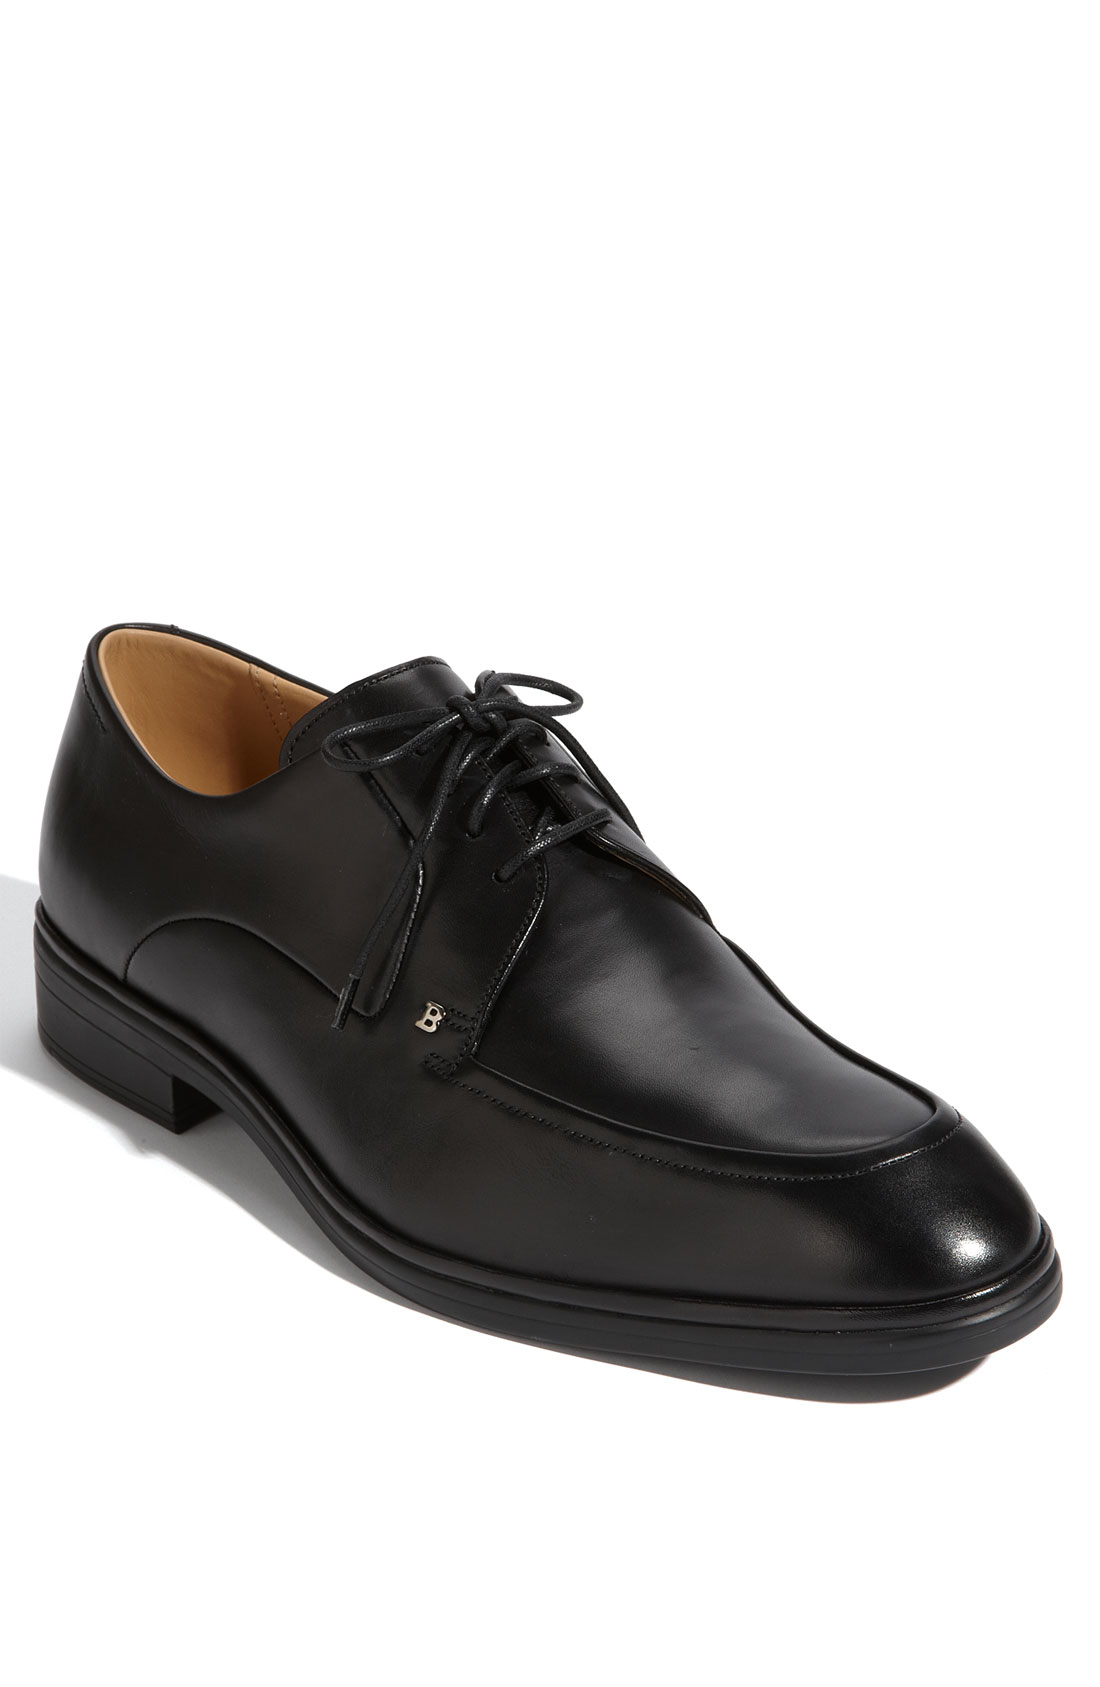 Bally Castions Oxford In Black For Men